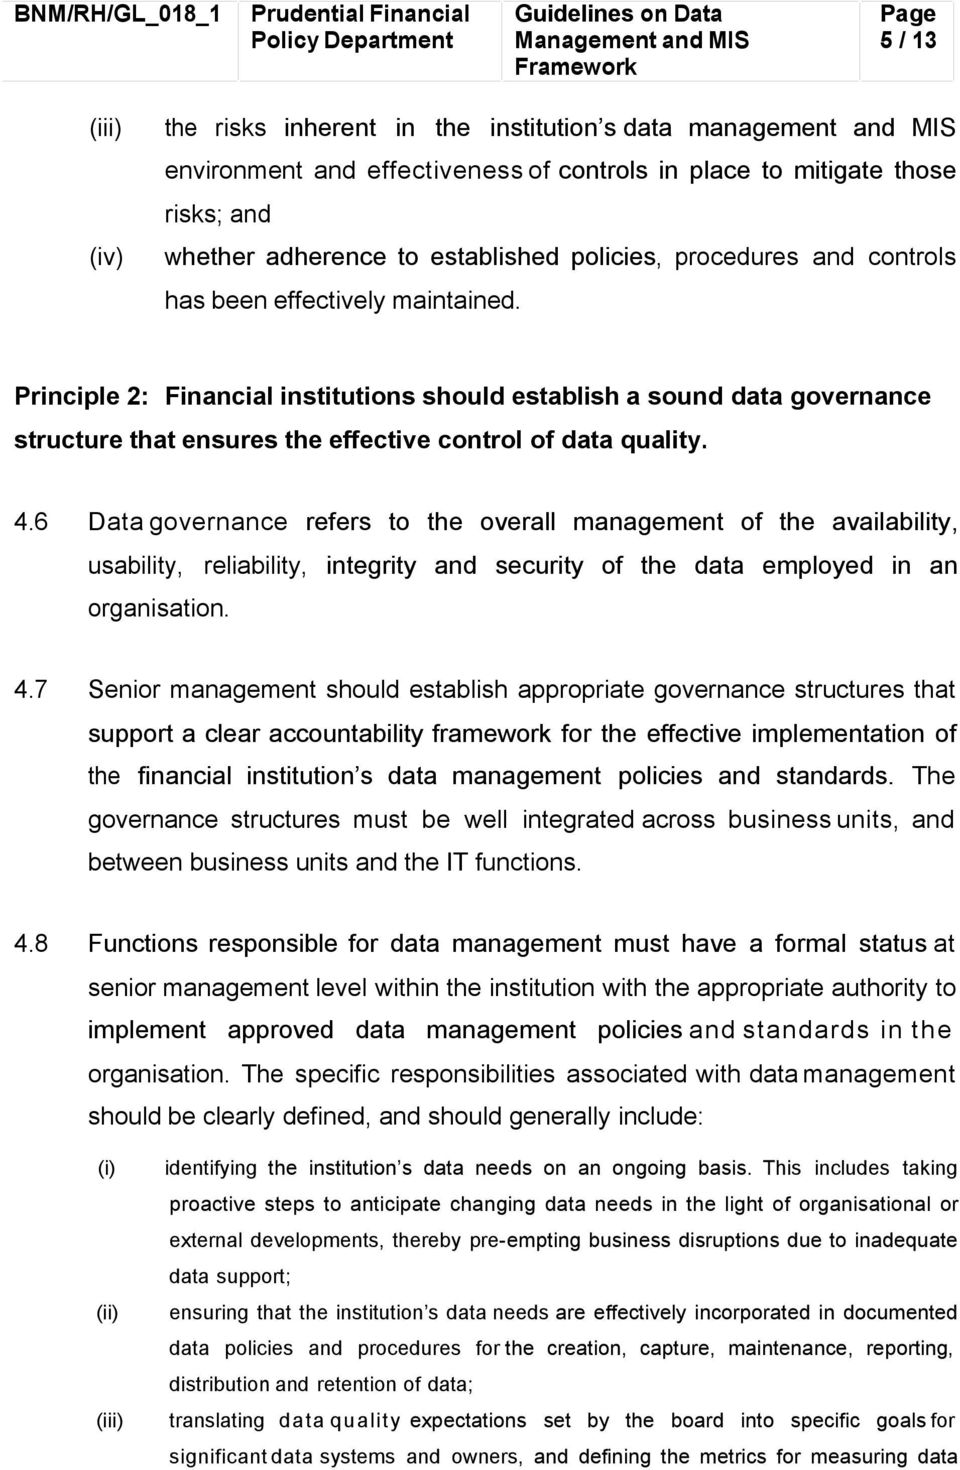 Principle 2: Financial institutions should establish a sound data governance structure that ensures the effective control of data quality. 4.